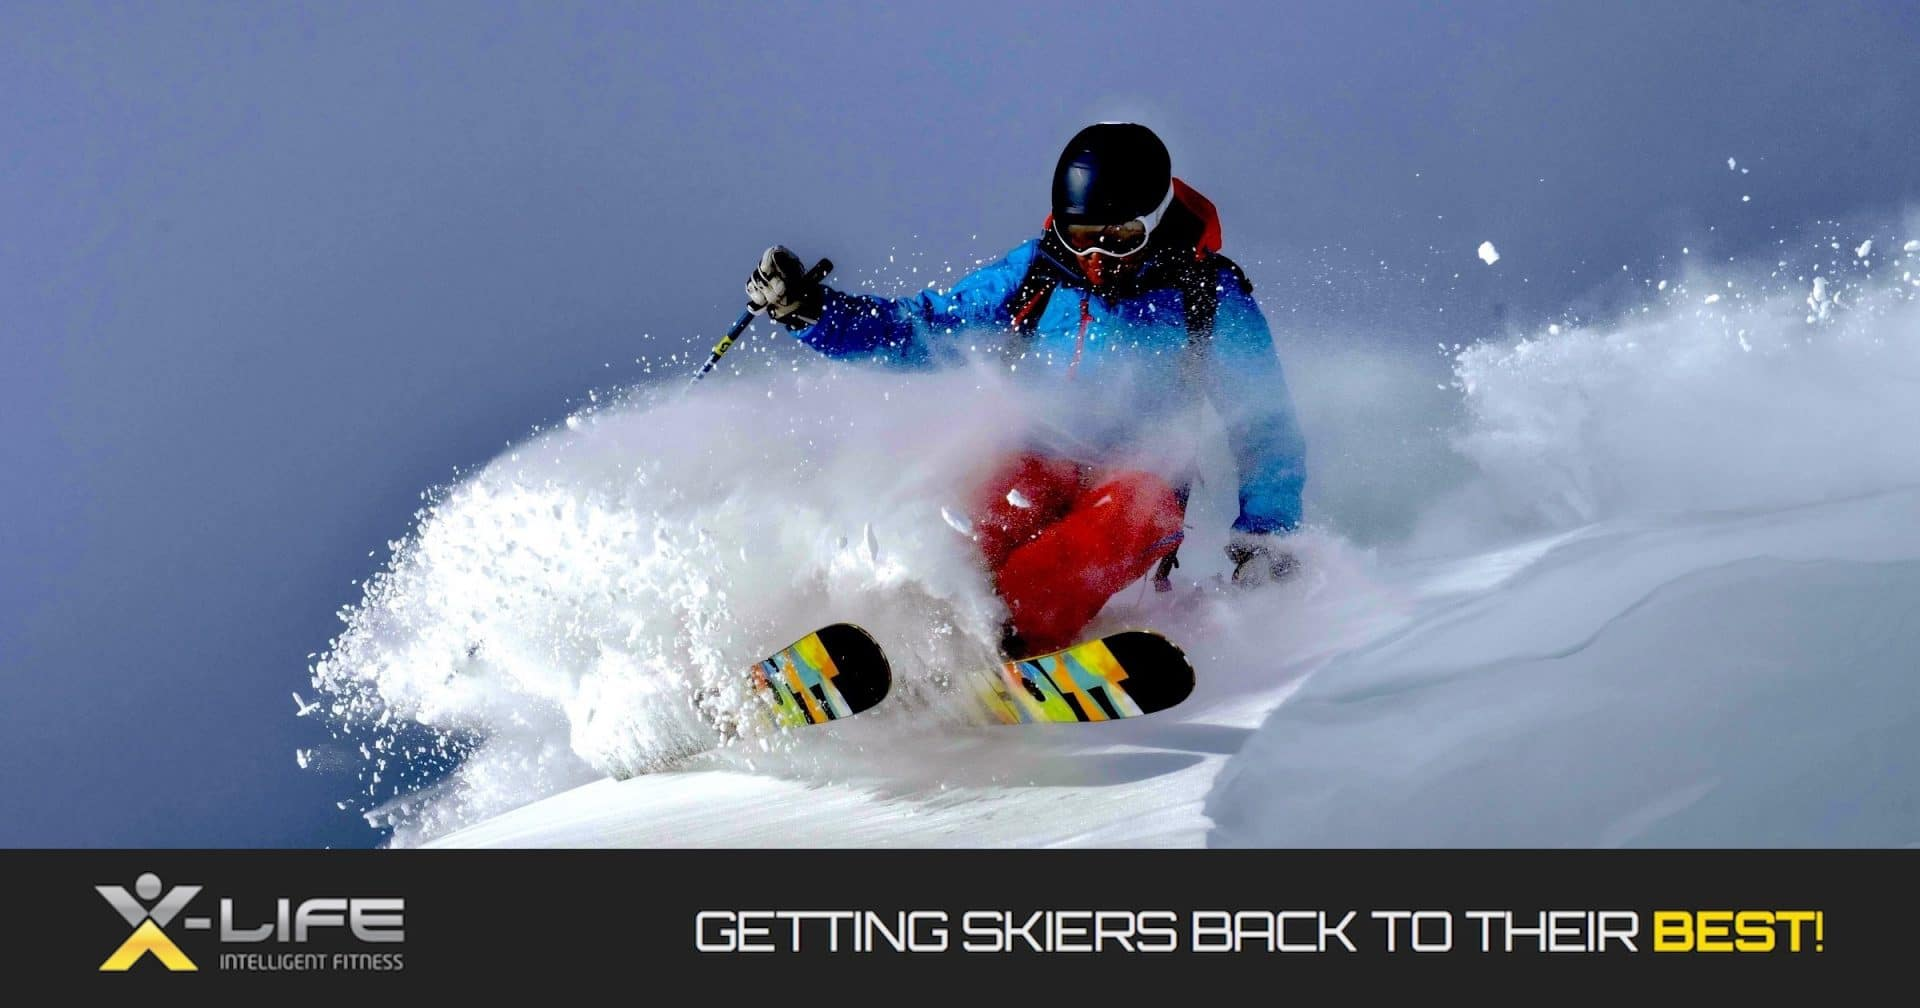 X-Life Online - Getting Skiers Back to Their BEST! Expert Ski Instructor, Alpine Race Coach, Ski Fitness expert, Online Ski-Fit program helping you ski as if you were decades younger...